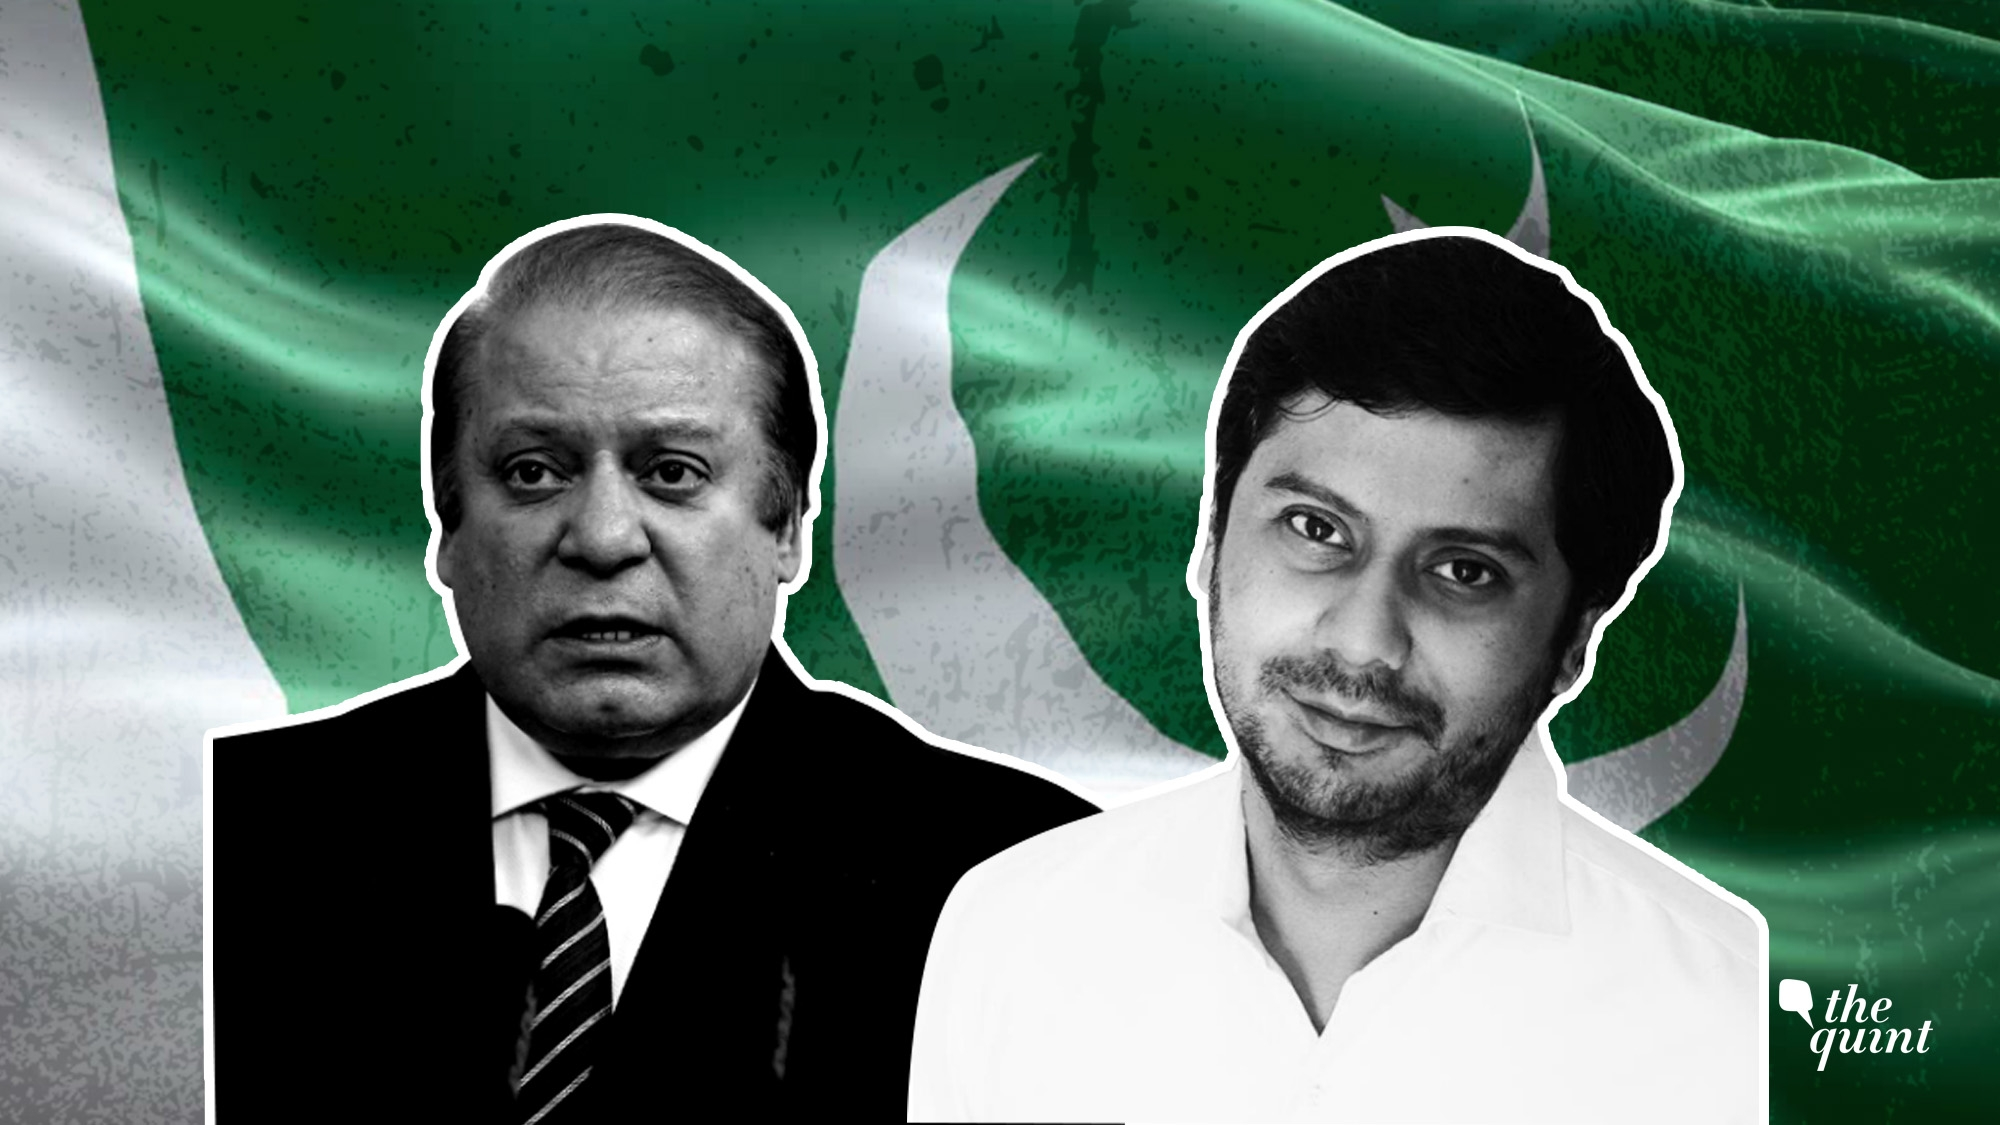 Pakistan Treason Case: How Press Freedom Dies, One Case at a Time